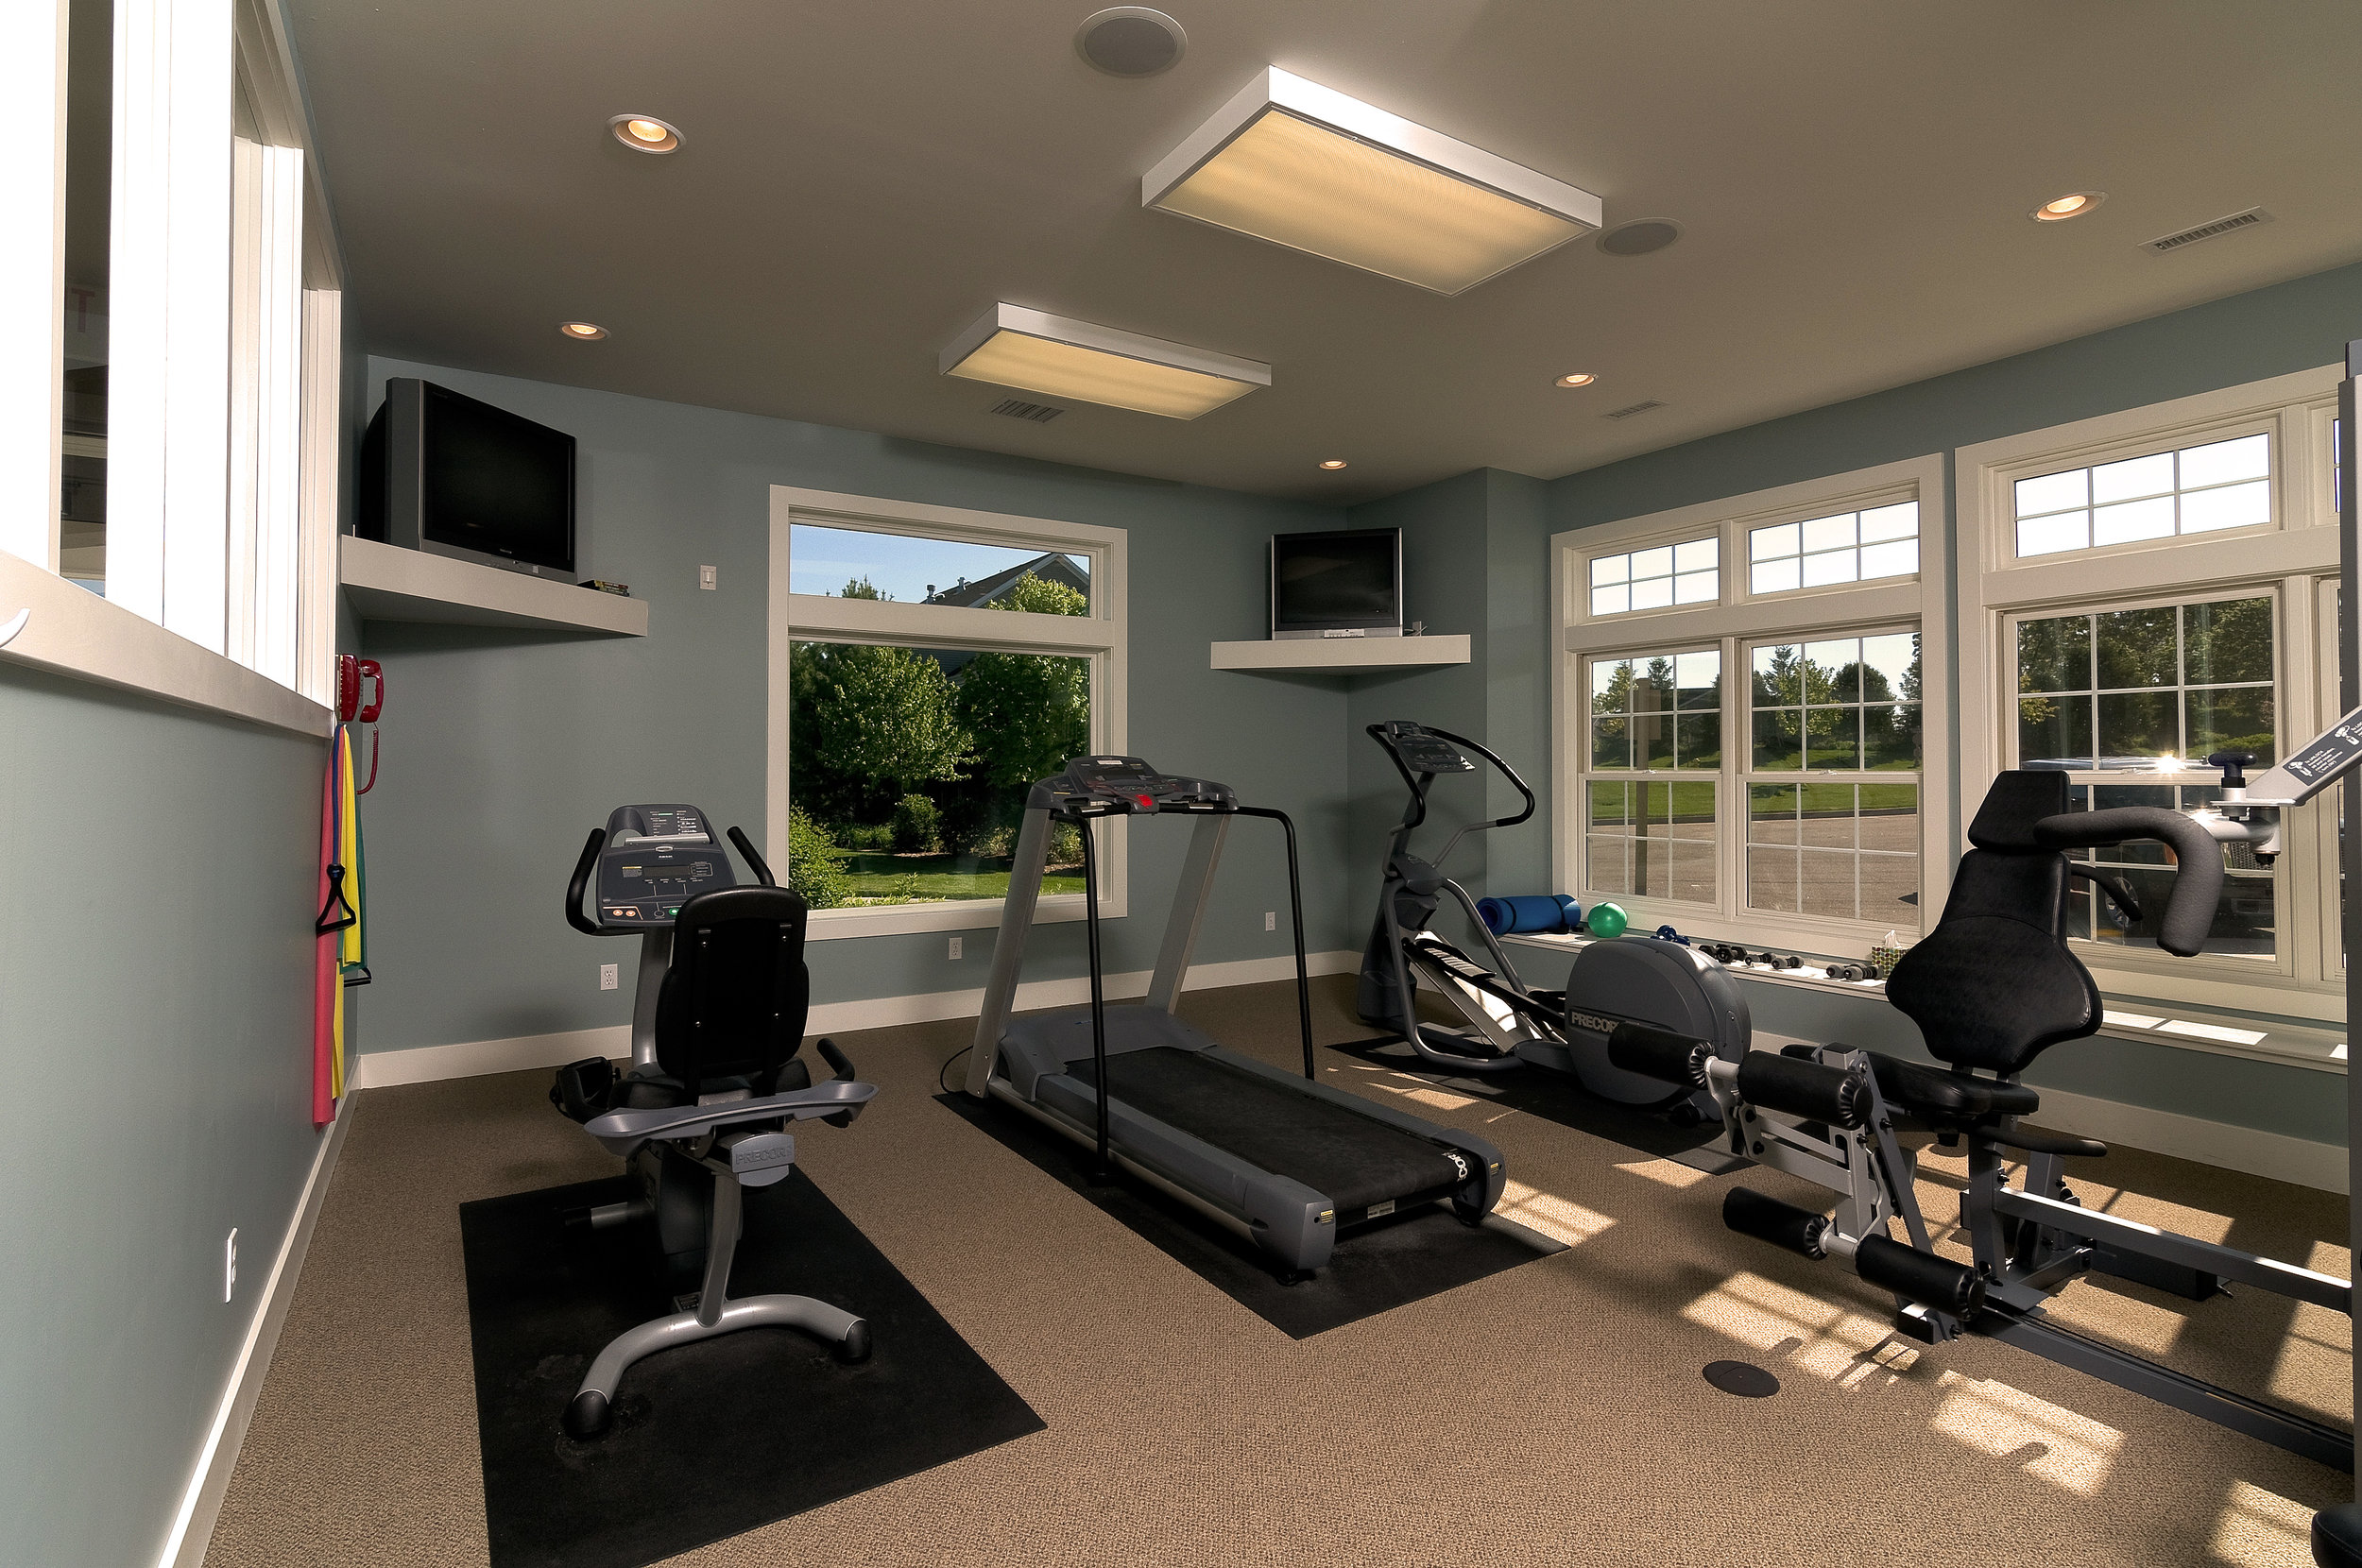 OH_Clubhouse_Fitness+Center[1].jpg